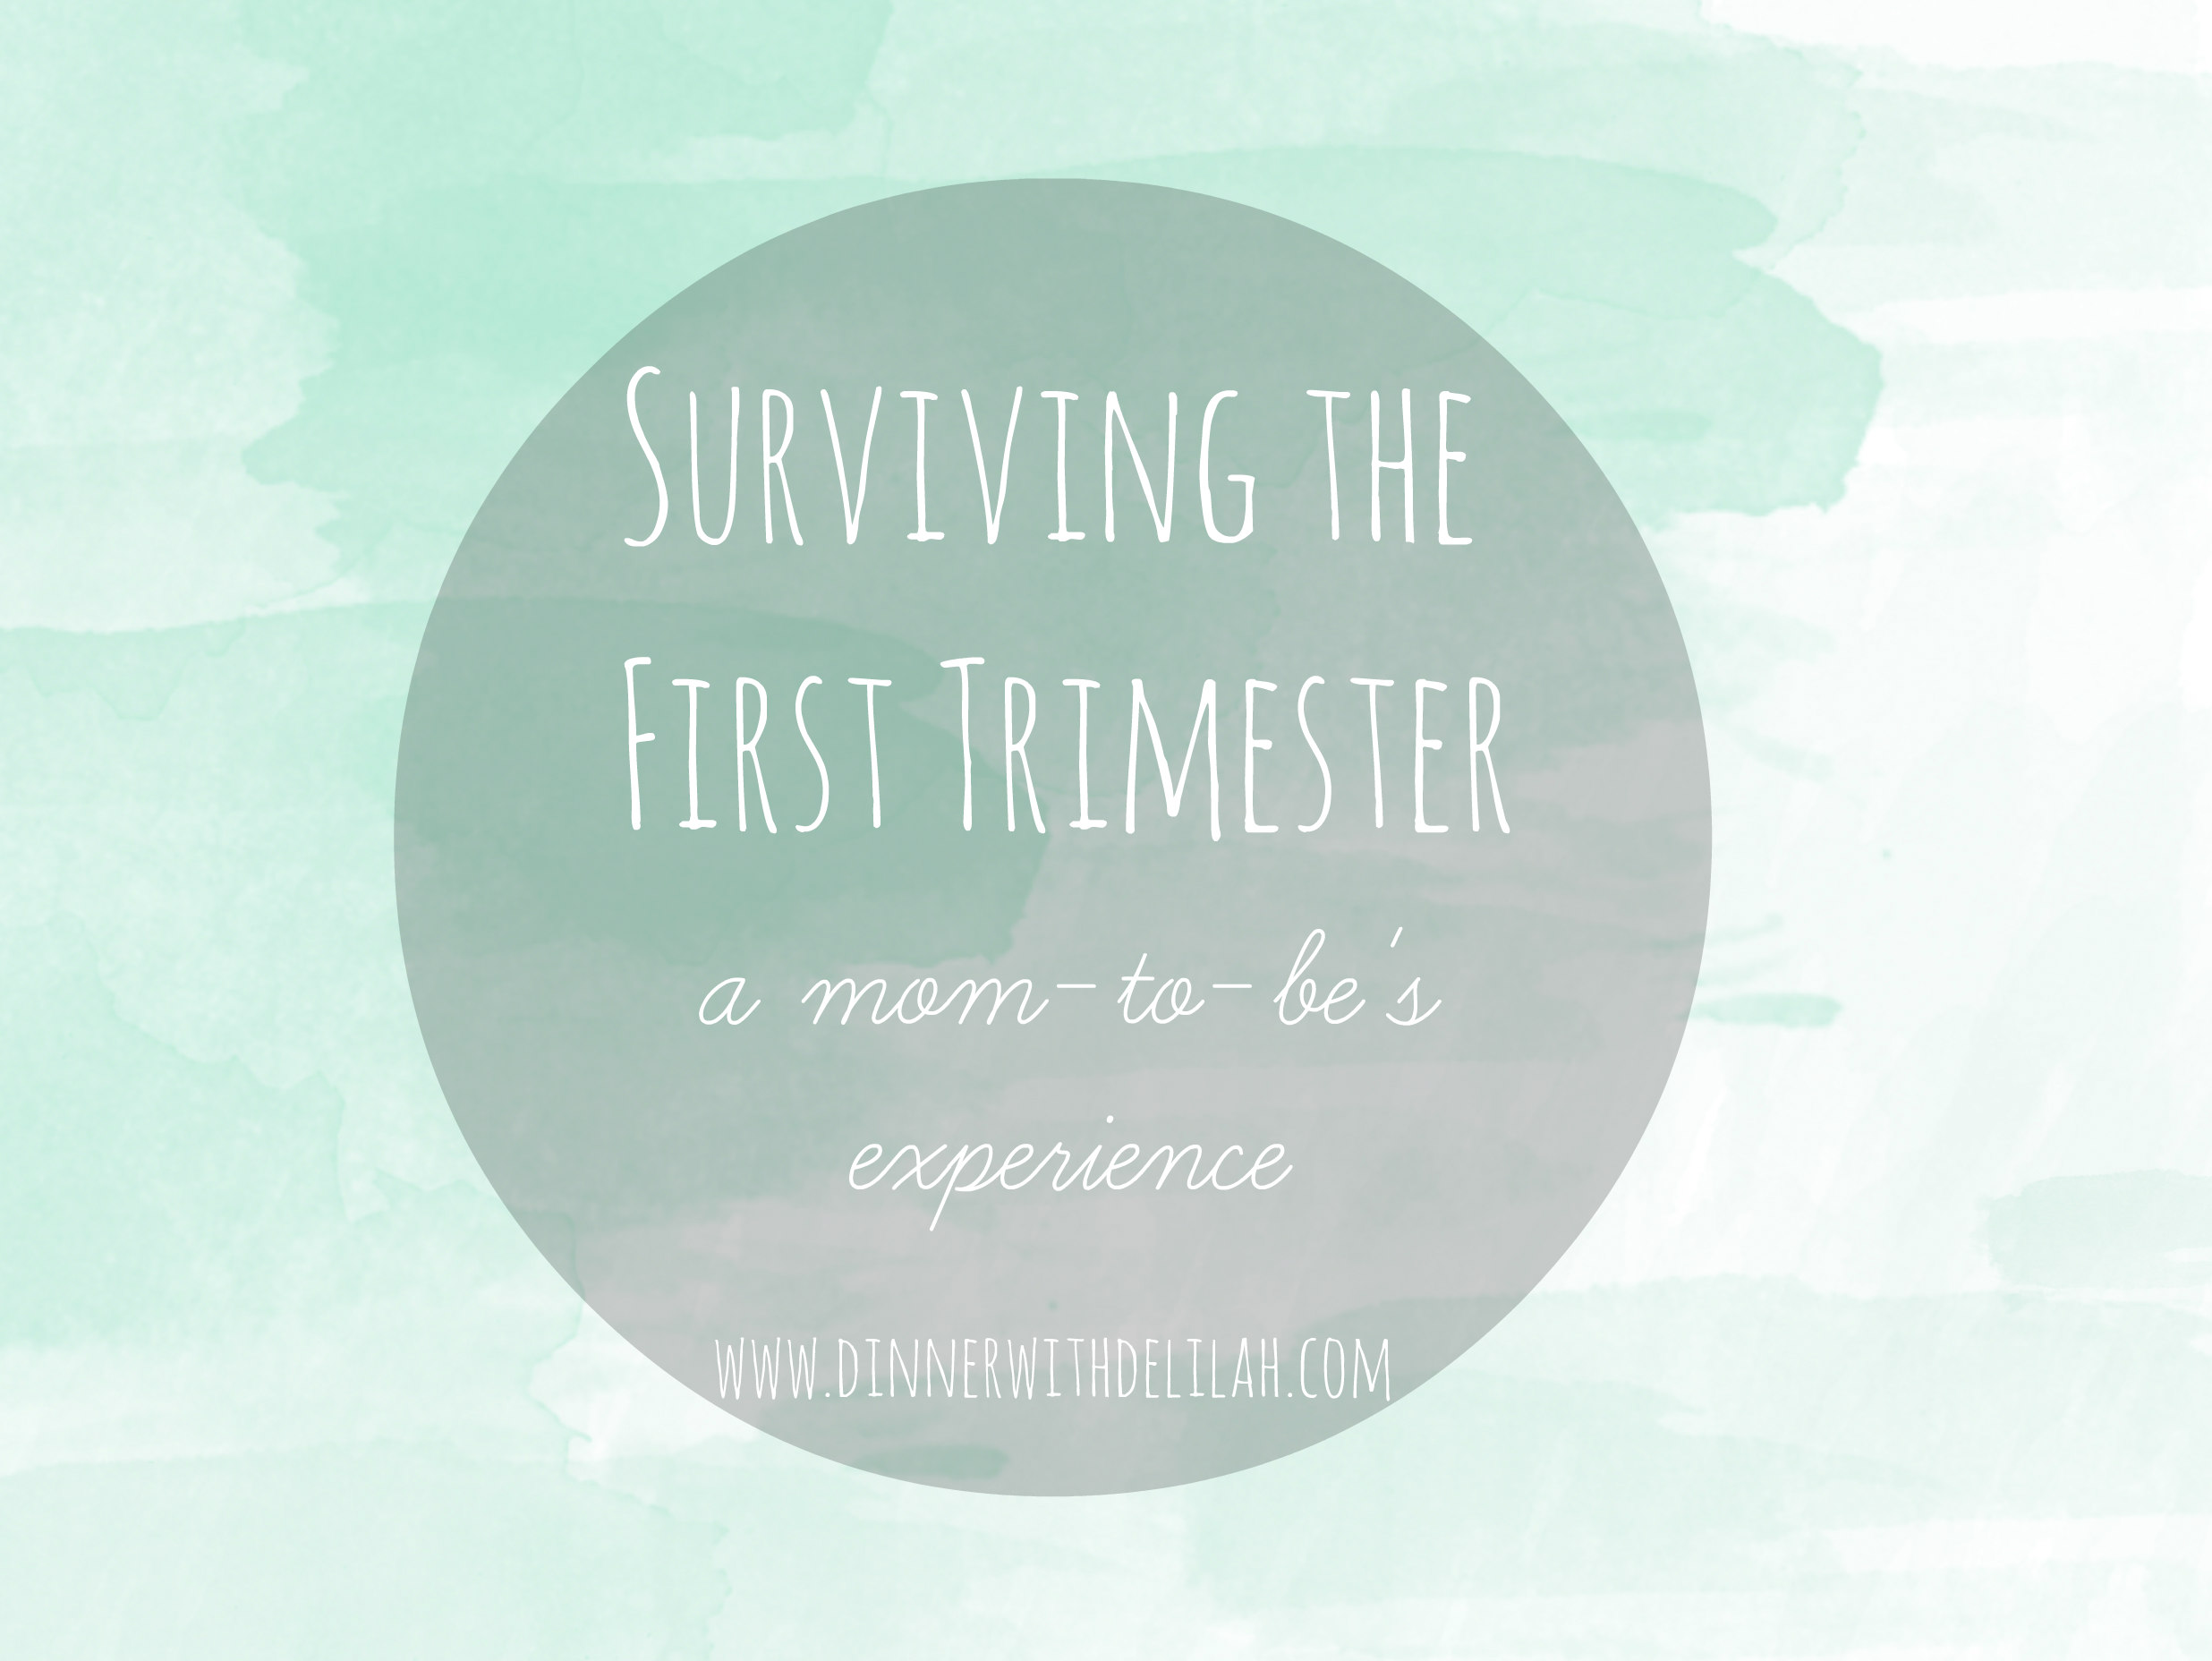 Surviving the First Trimester | dinnerwithdelilah